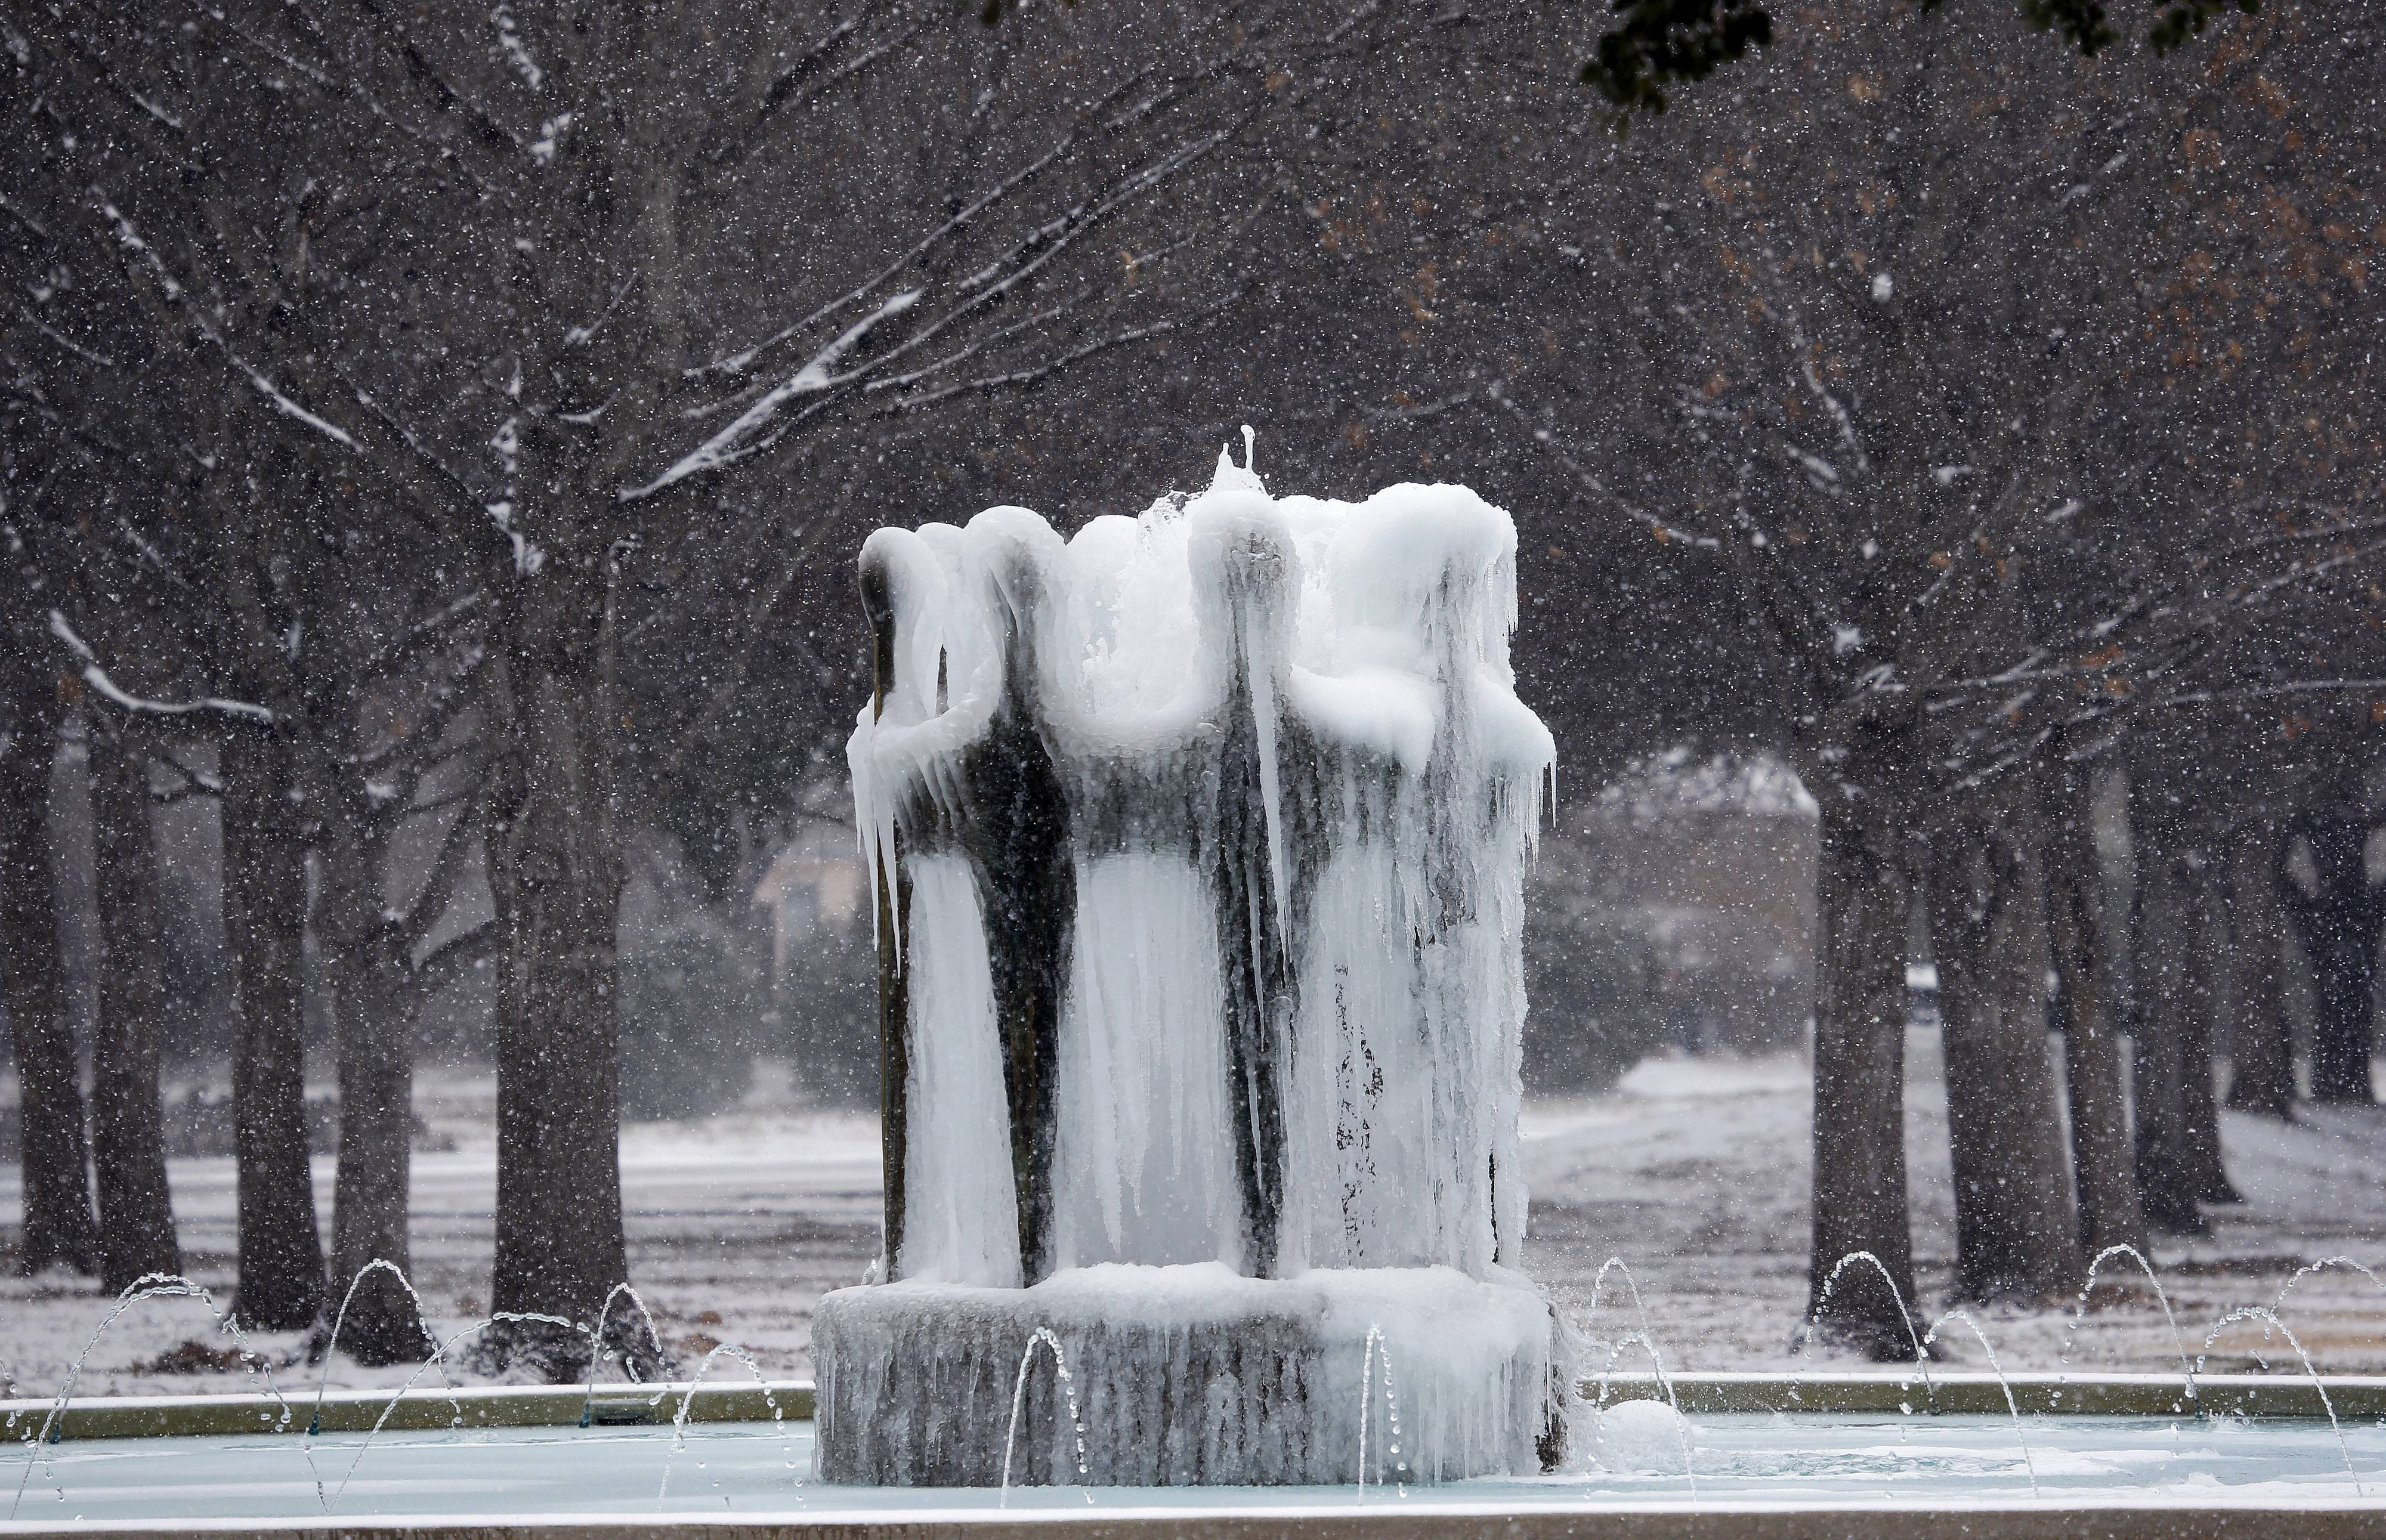 Ice forms on a water fountain as a light snow falls in Richardson, Texas, Thursday, Feb. 6, 2014. The National Weather Service recorded light snow Thursday in Austin, Dallas-Fort Worth, Abilene, Midland-Odessa, San Angelo and Lubbock.